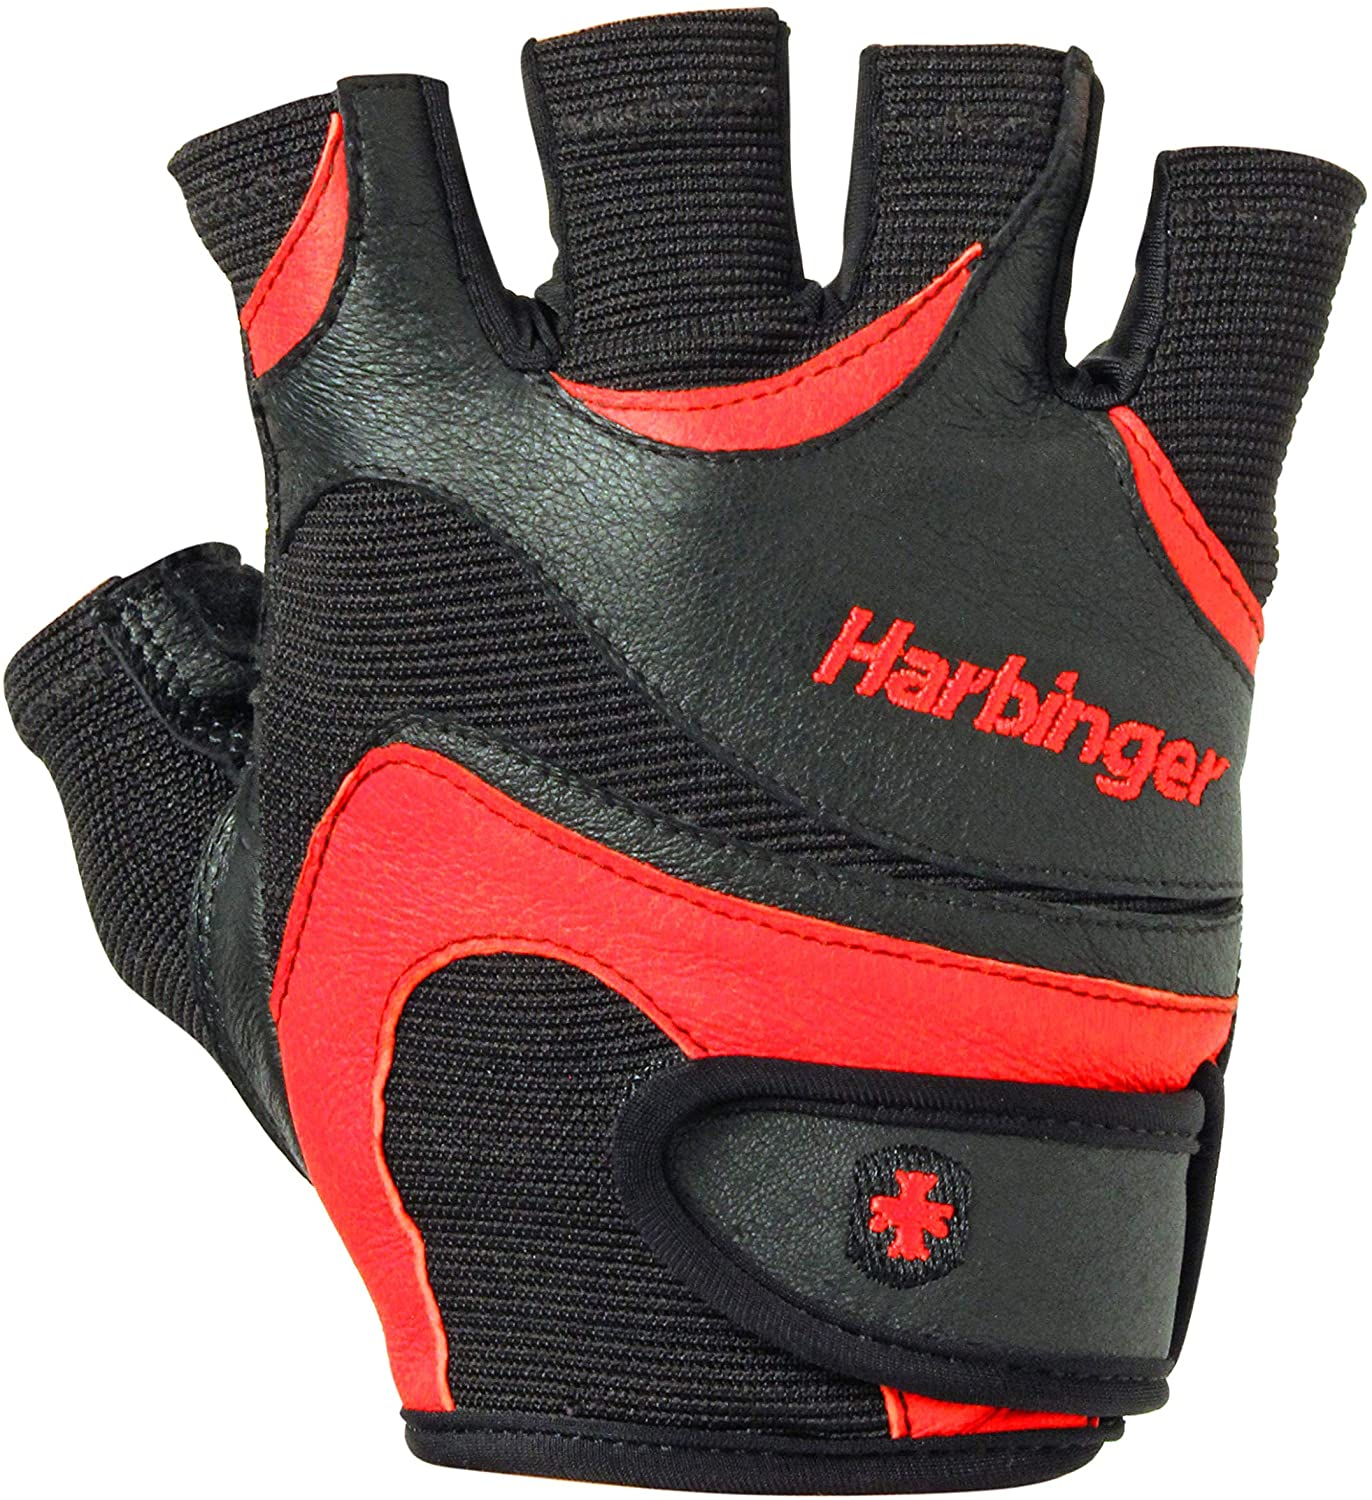 Harbinger FlexFit Non-Wristwrap Weightlifting Gloves with Flexible Cushioned Leather Palm (Pair)